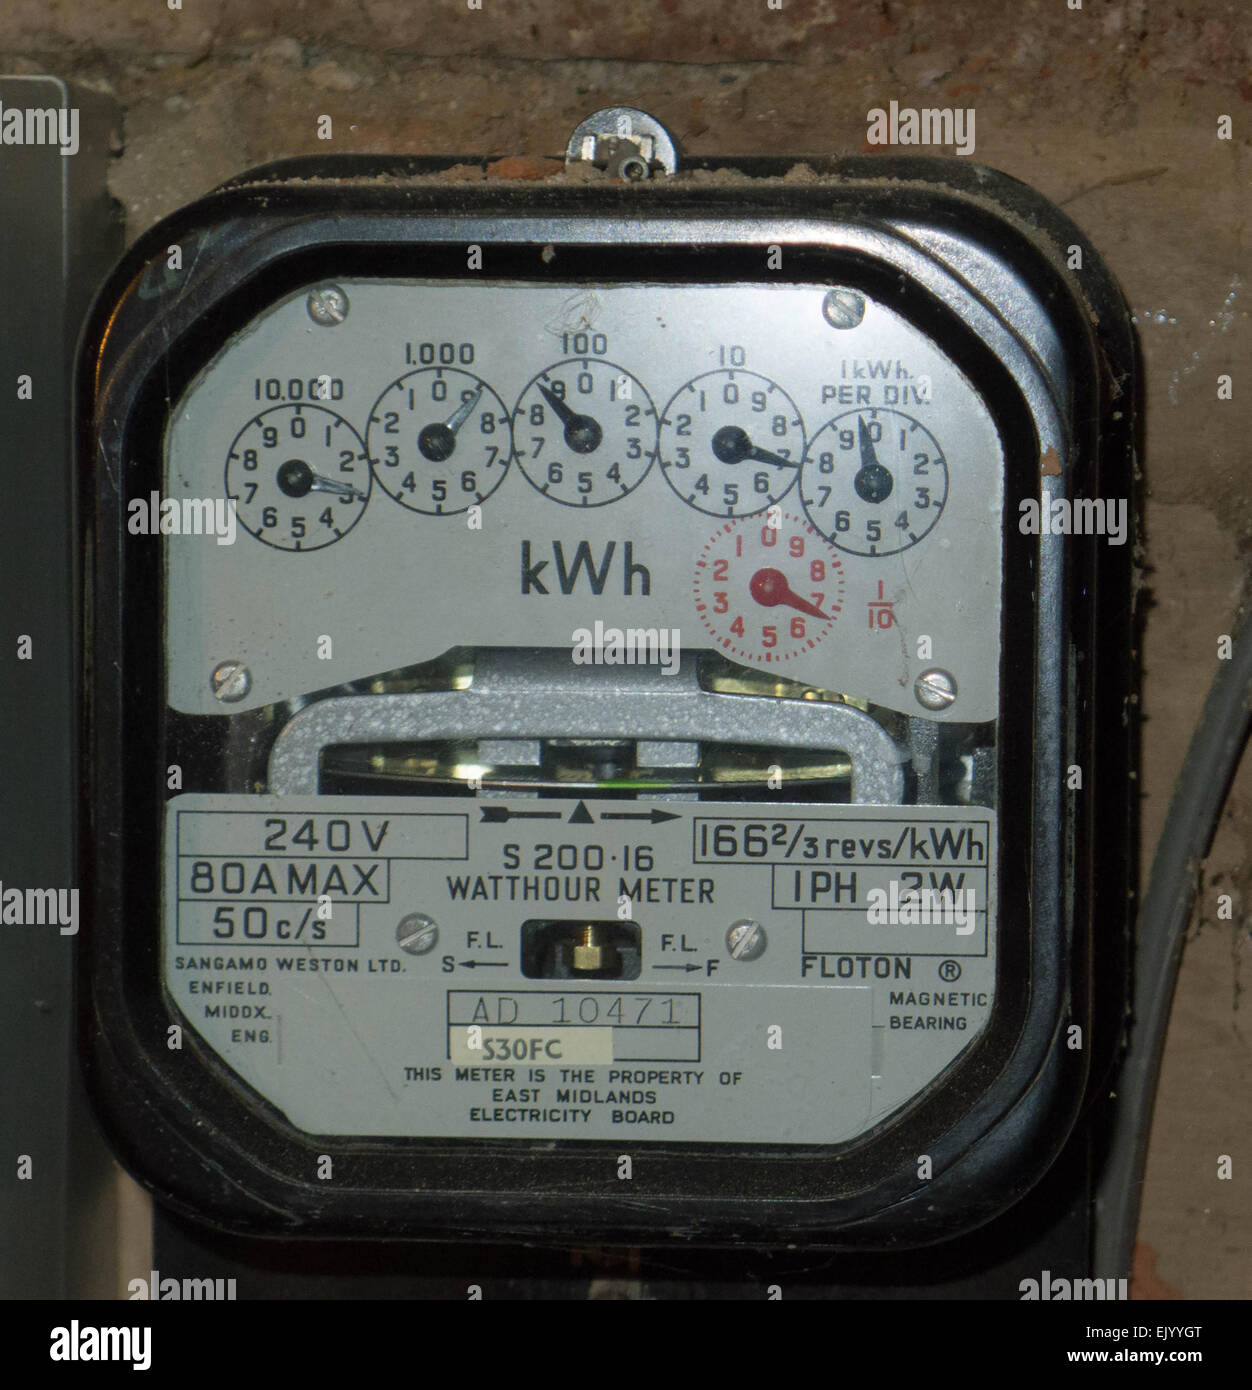 Electricity meter, old style electric meter, electricity meter with dials, meter reading, power supply, electricity, Stock Photo